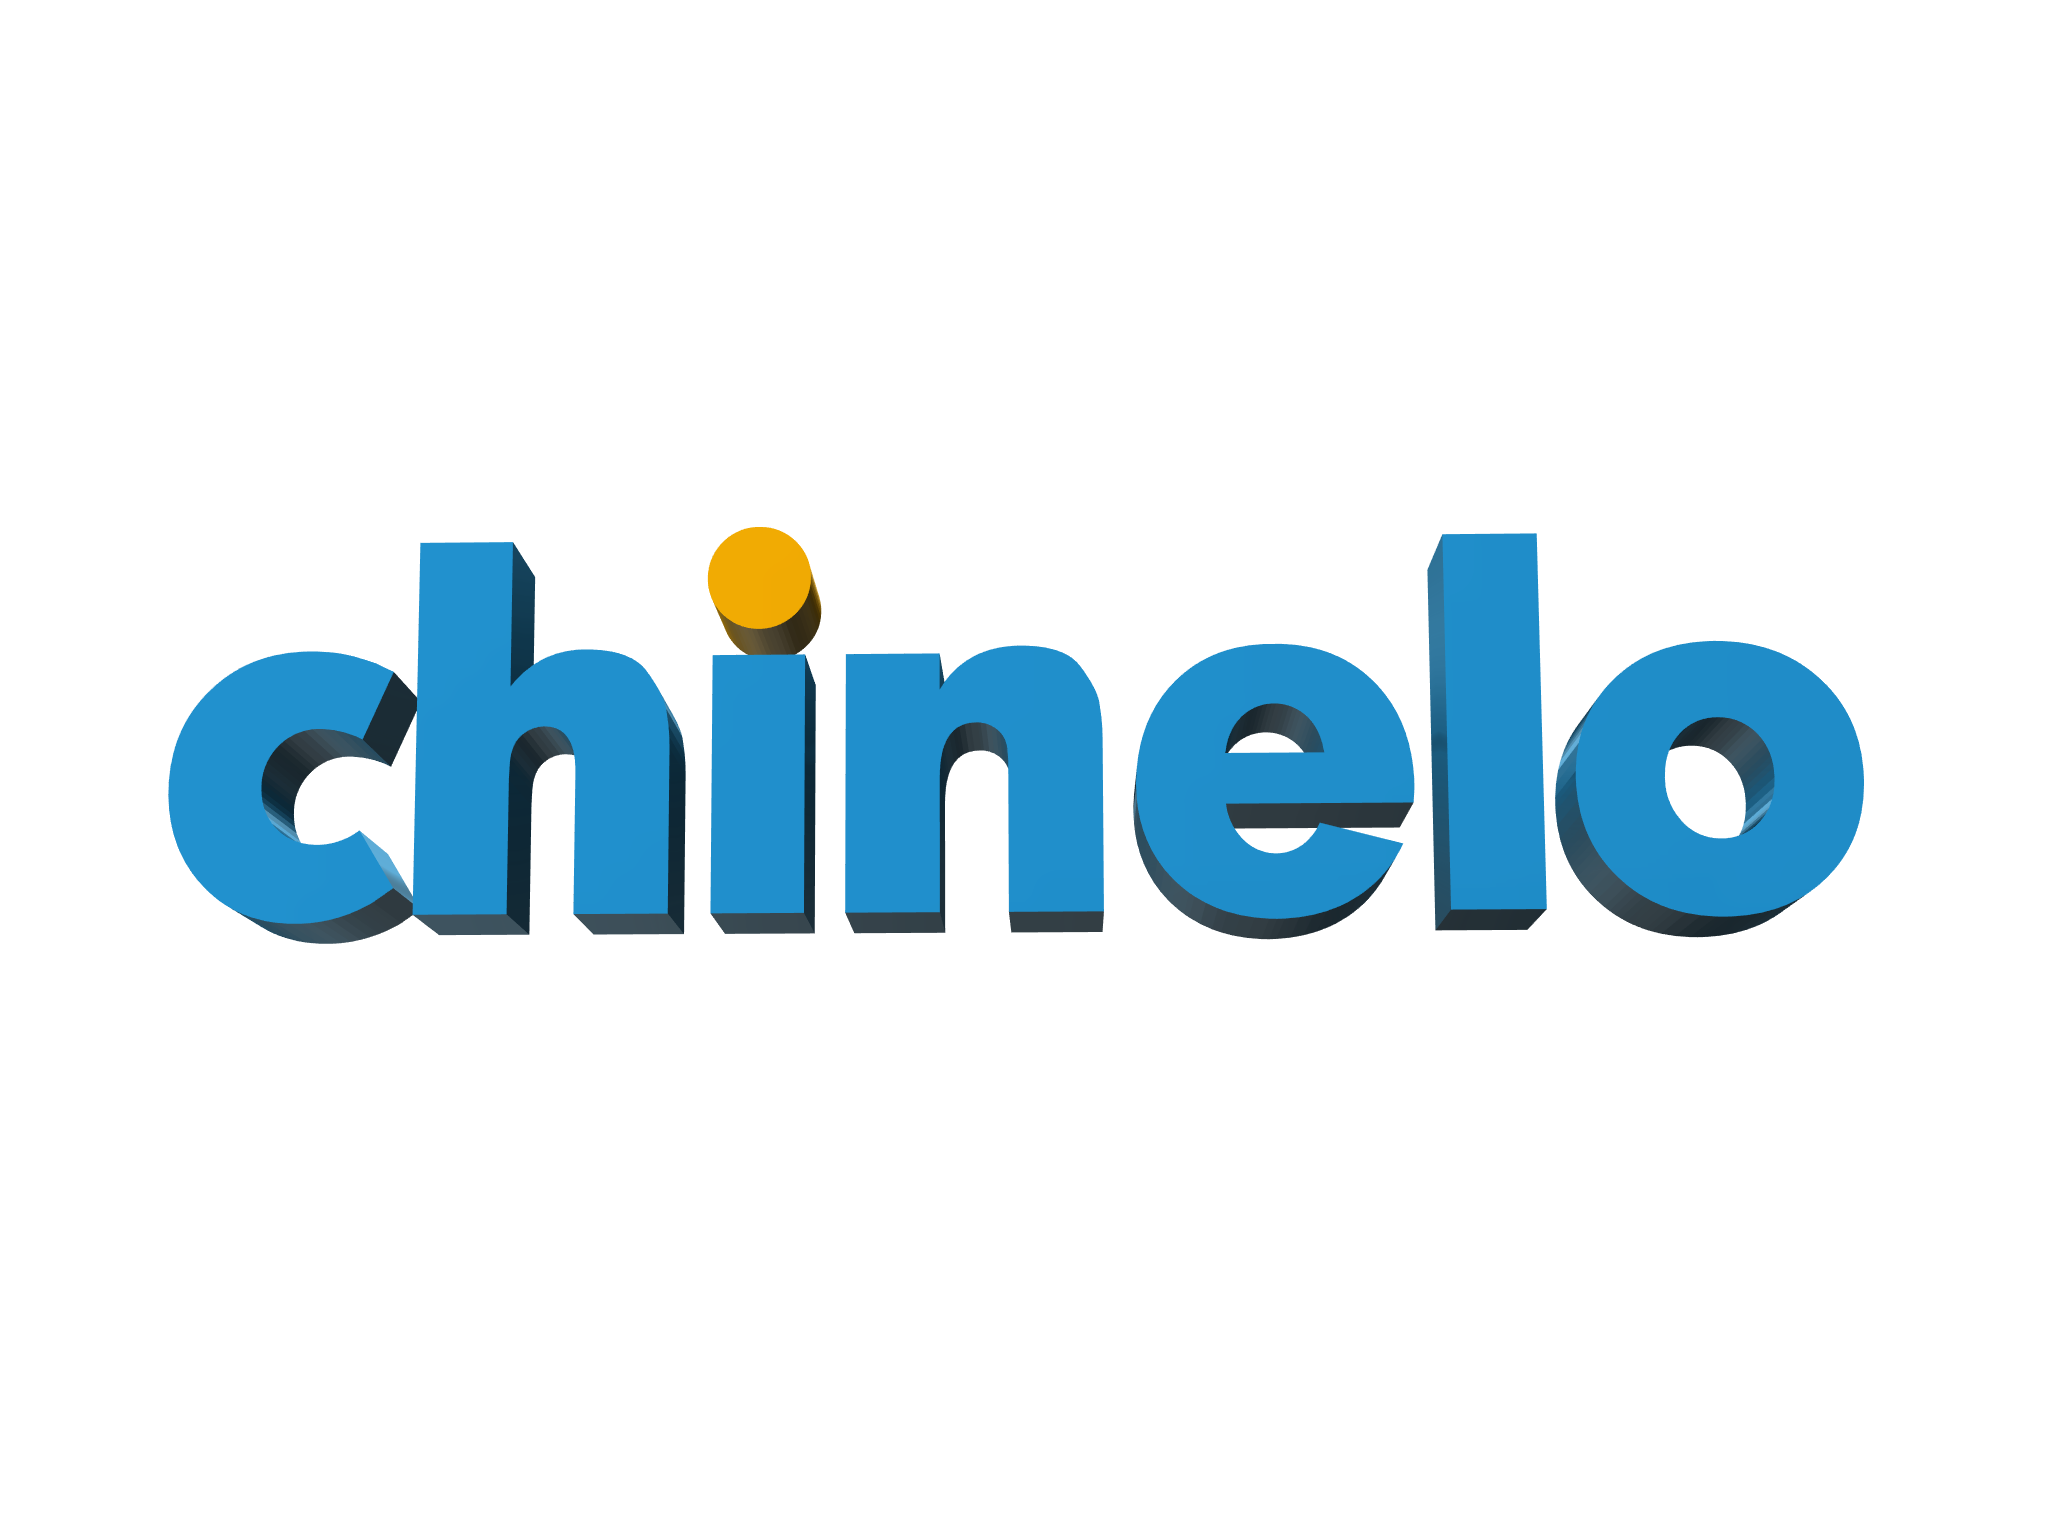 chinelo_logo - 3D design by Daniel Bravo on Apr 12, 2018